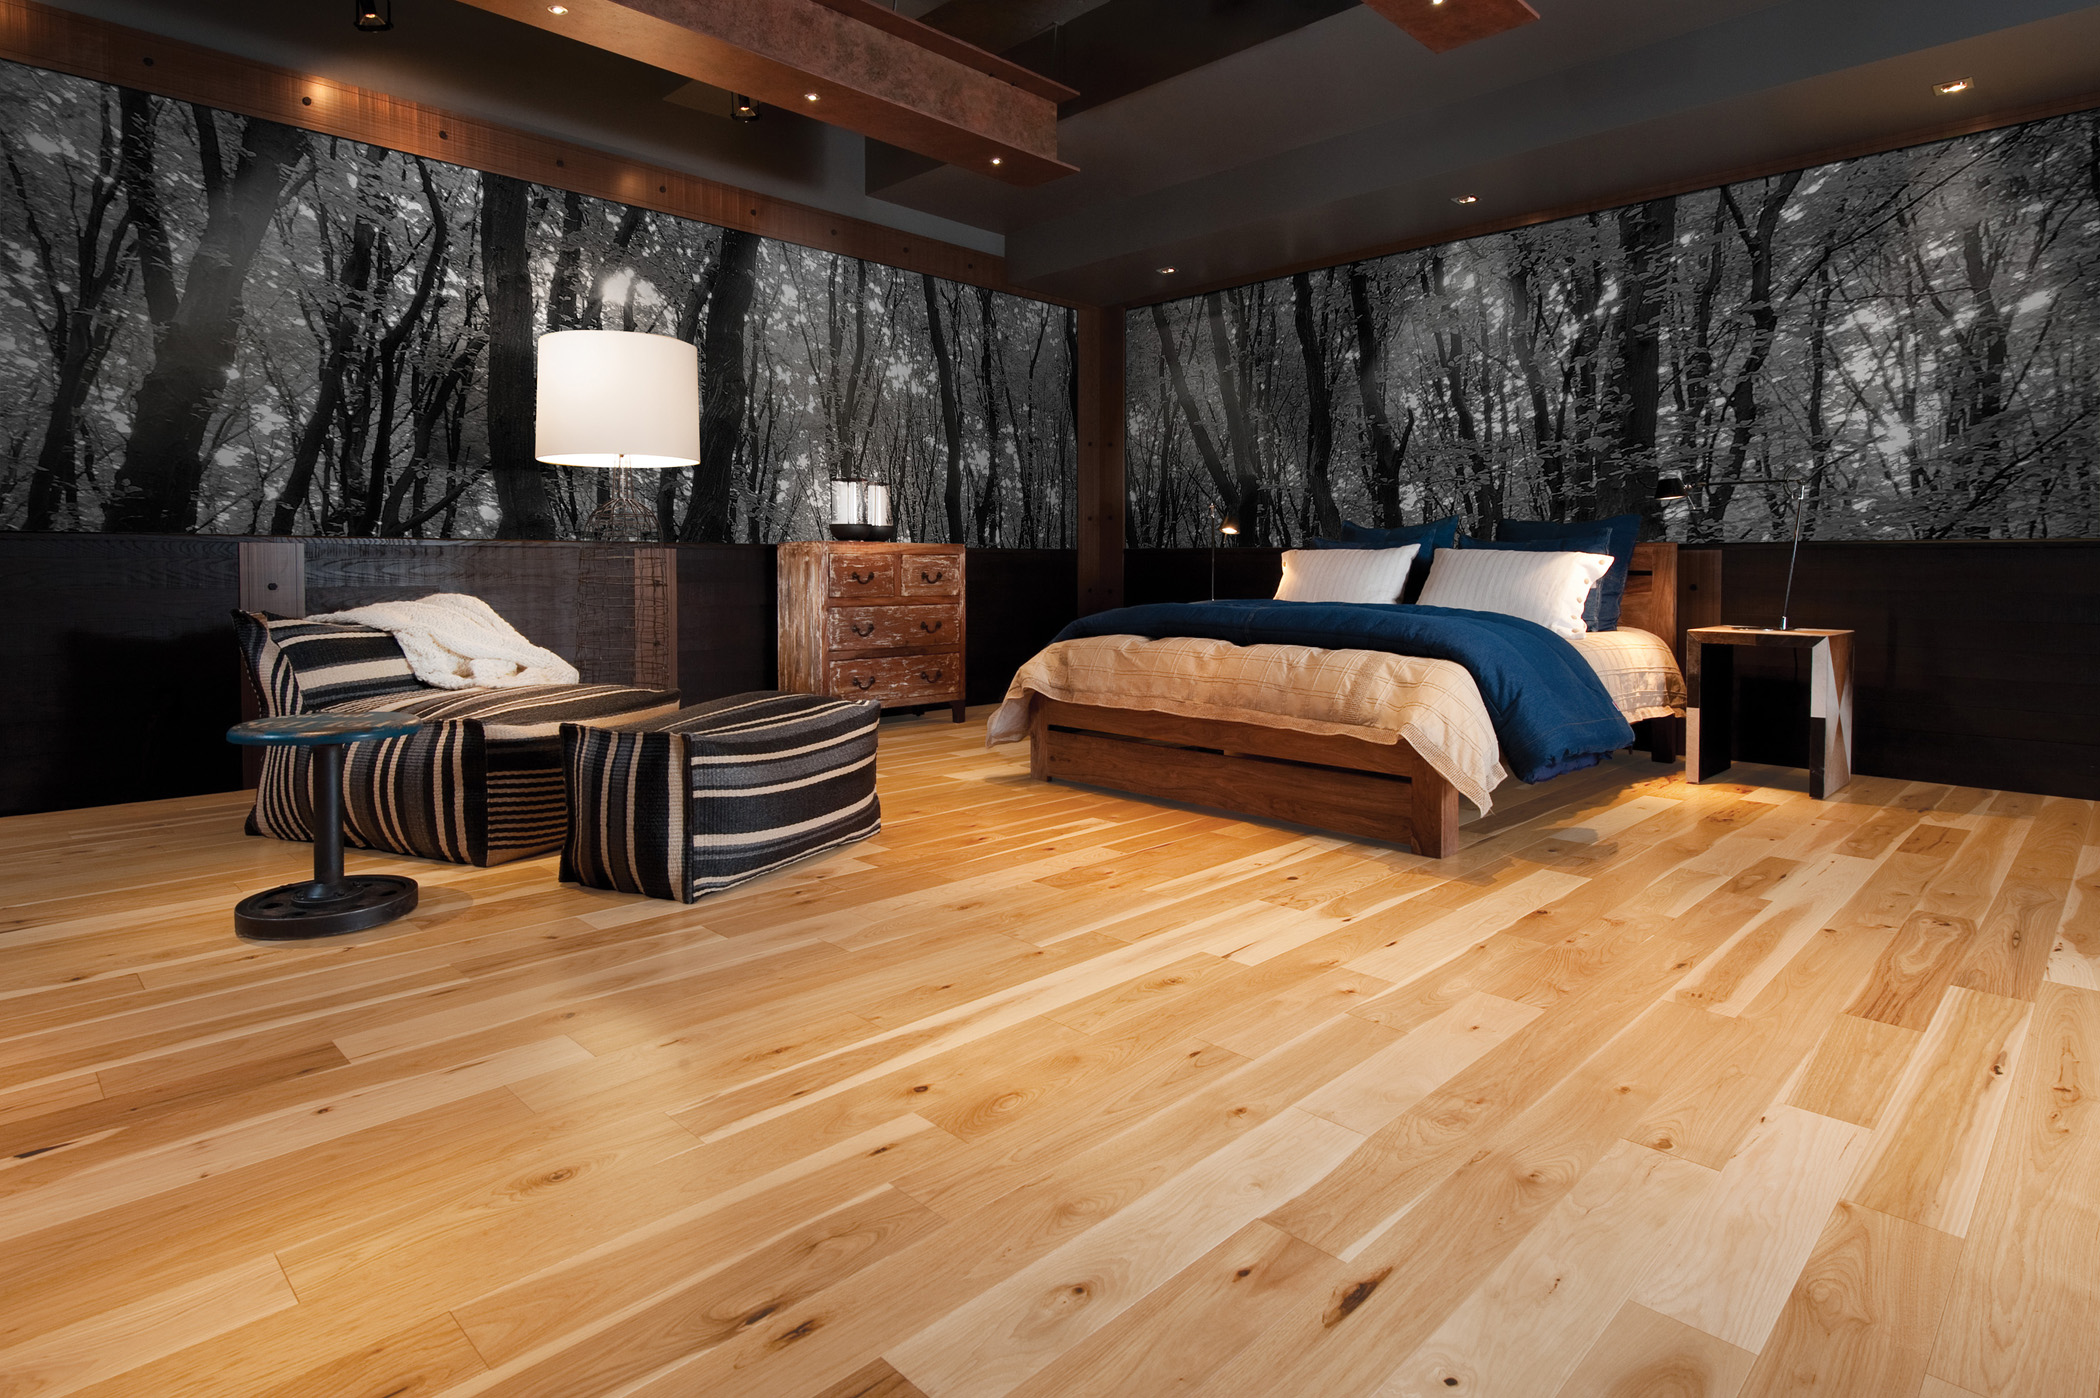 Will Hardwood Flooring Increase My Property Value?